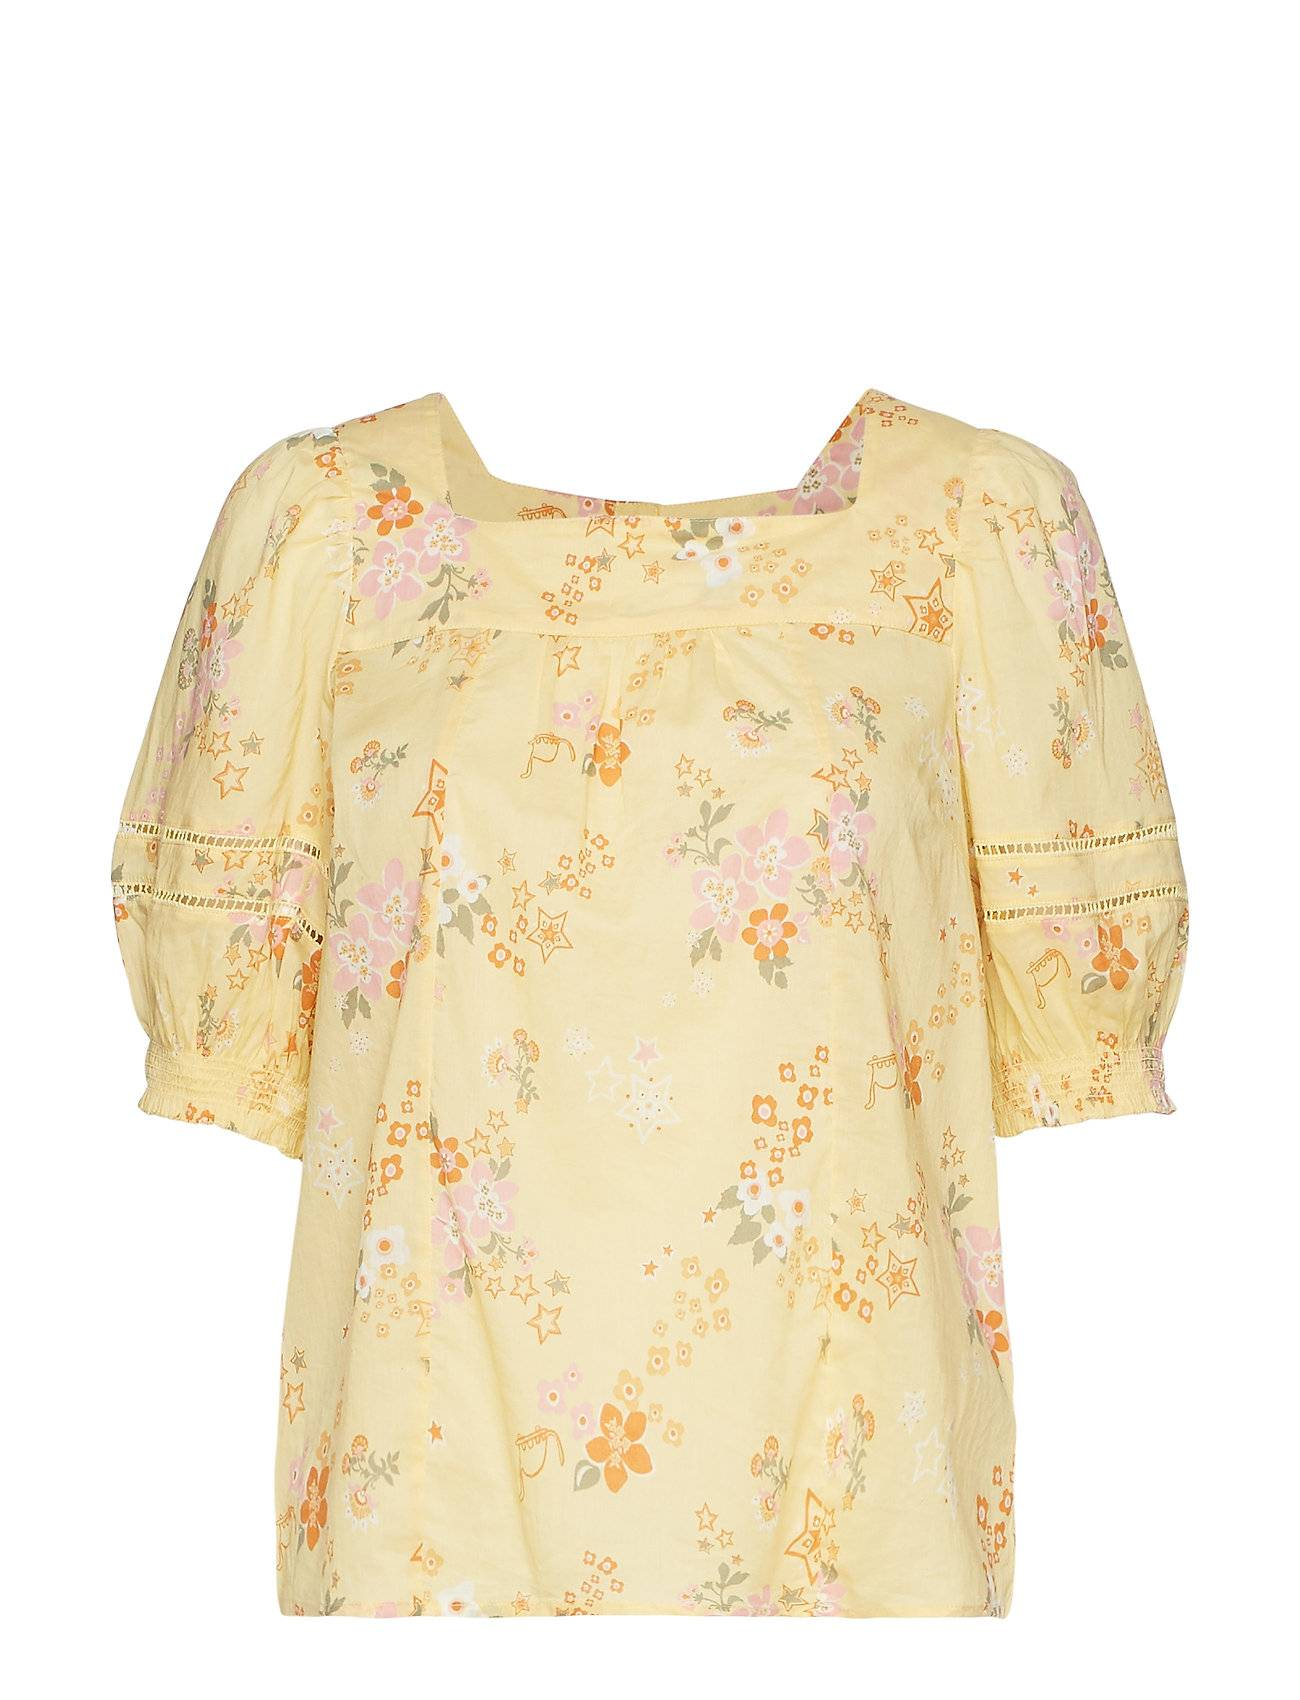 Image of ODD MOLLY Marvelously Free Blouse Blouses Short-sleeved Keltainen ODD MOLLY